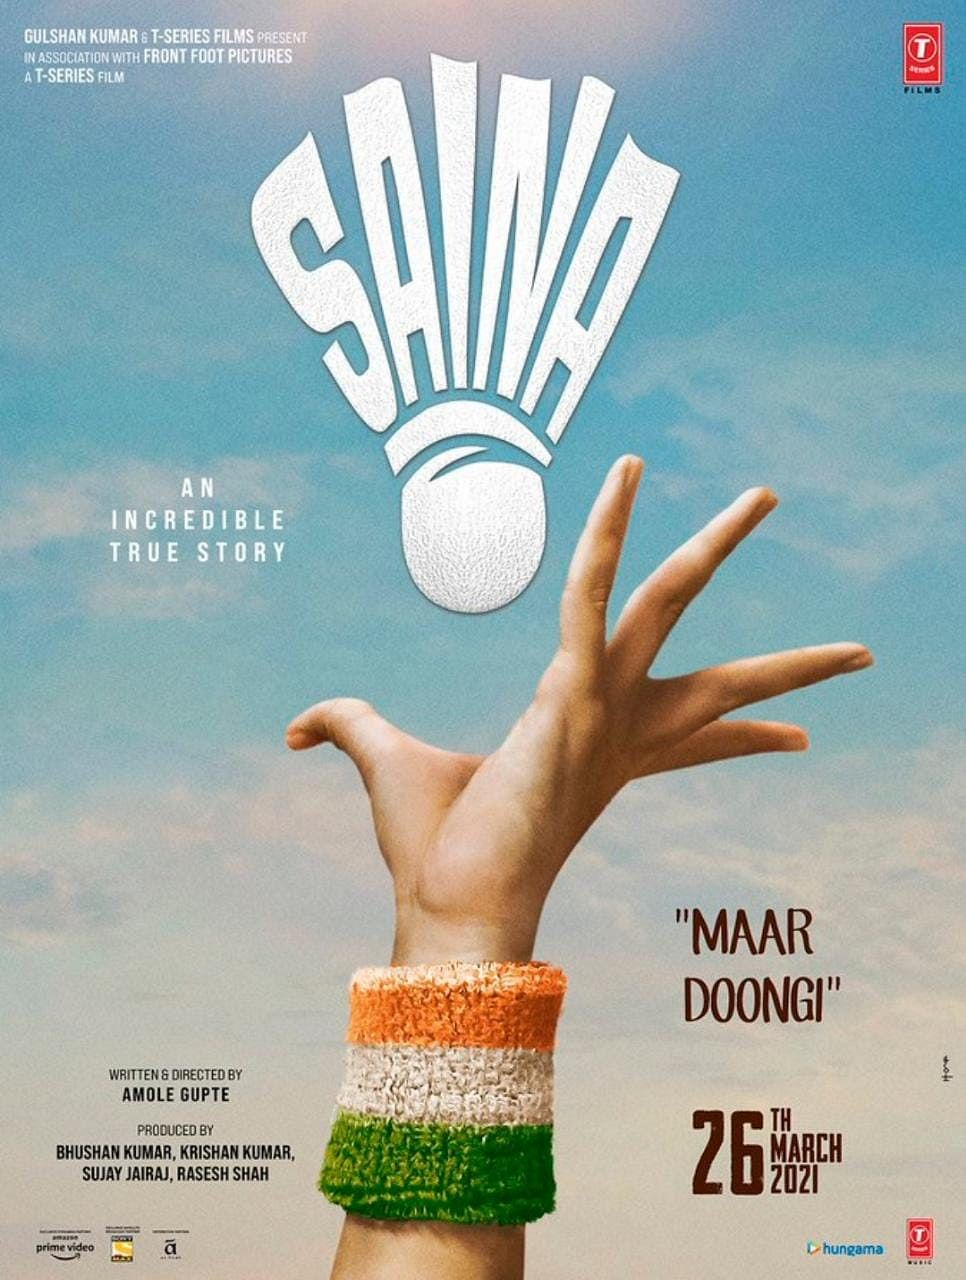 First Poster & Release Date of Parineeti-Starrer 'Saina' Out